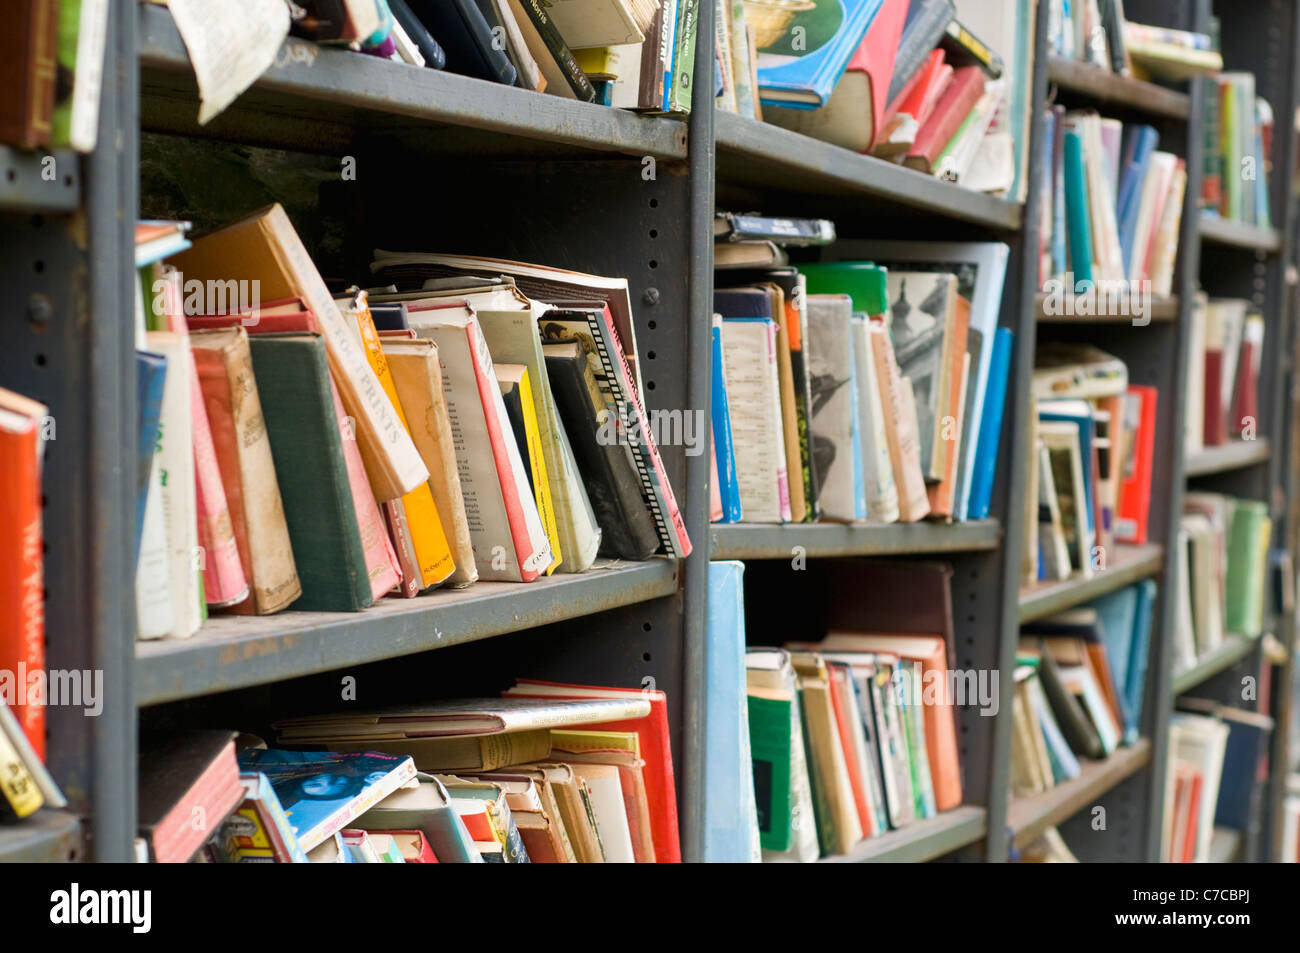 Shelves full of second hand books on sale at a shop in Hay-on-Wye, Powys, Wales - Stock Image